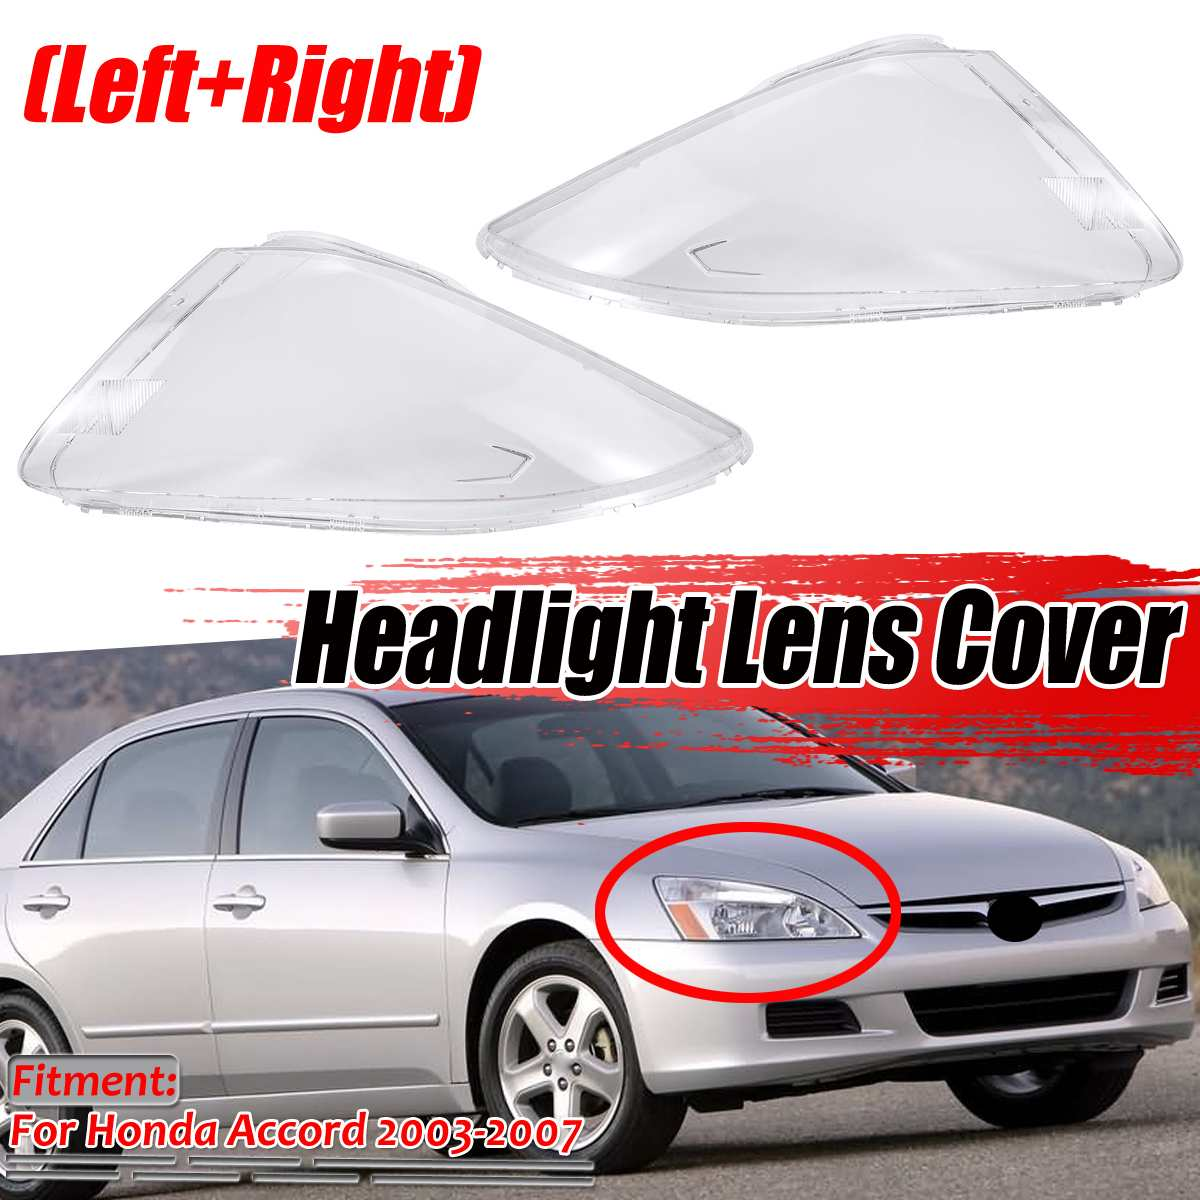 New <font><b>Pair</b></font> Car Front <font><b>Headlight</b></font> Headlamp Light <font><b>Lens</b></font> Shell <font><b>Cover</b></font> Trim For Honda For Accord 2003-2007 Headlamp <font><b>Lenses</b></font> <font><b>Covers</b></font> Trims image